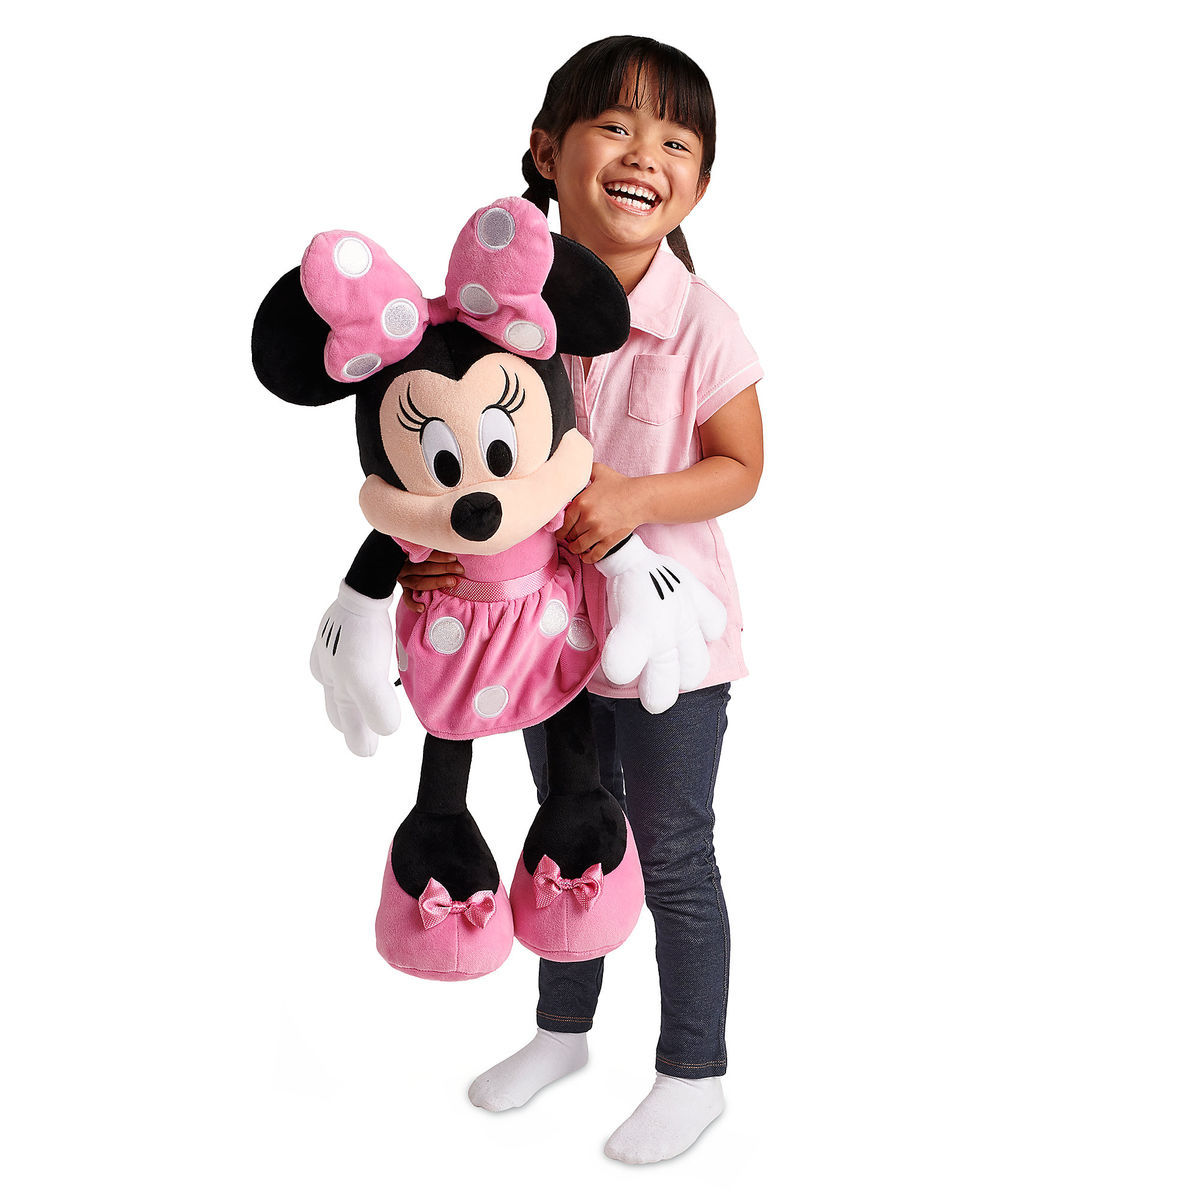 Fabulous Minnie Mouse Plush - Pink - Large | shopDisney @SS42